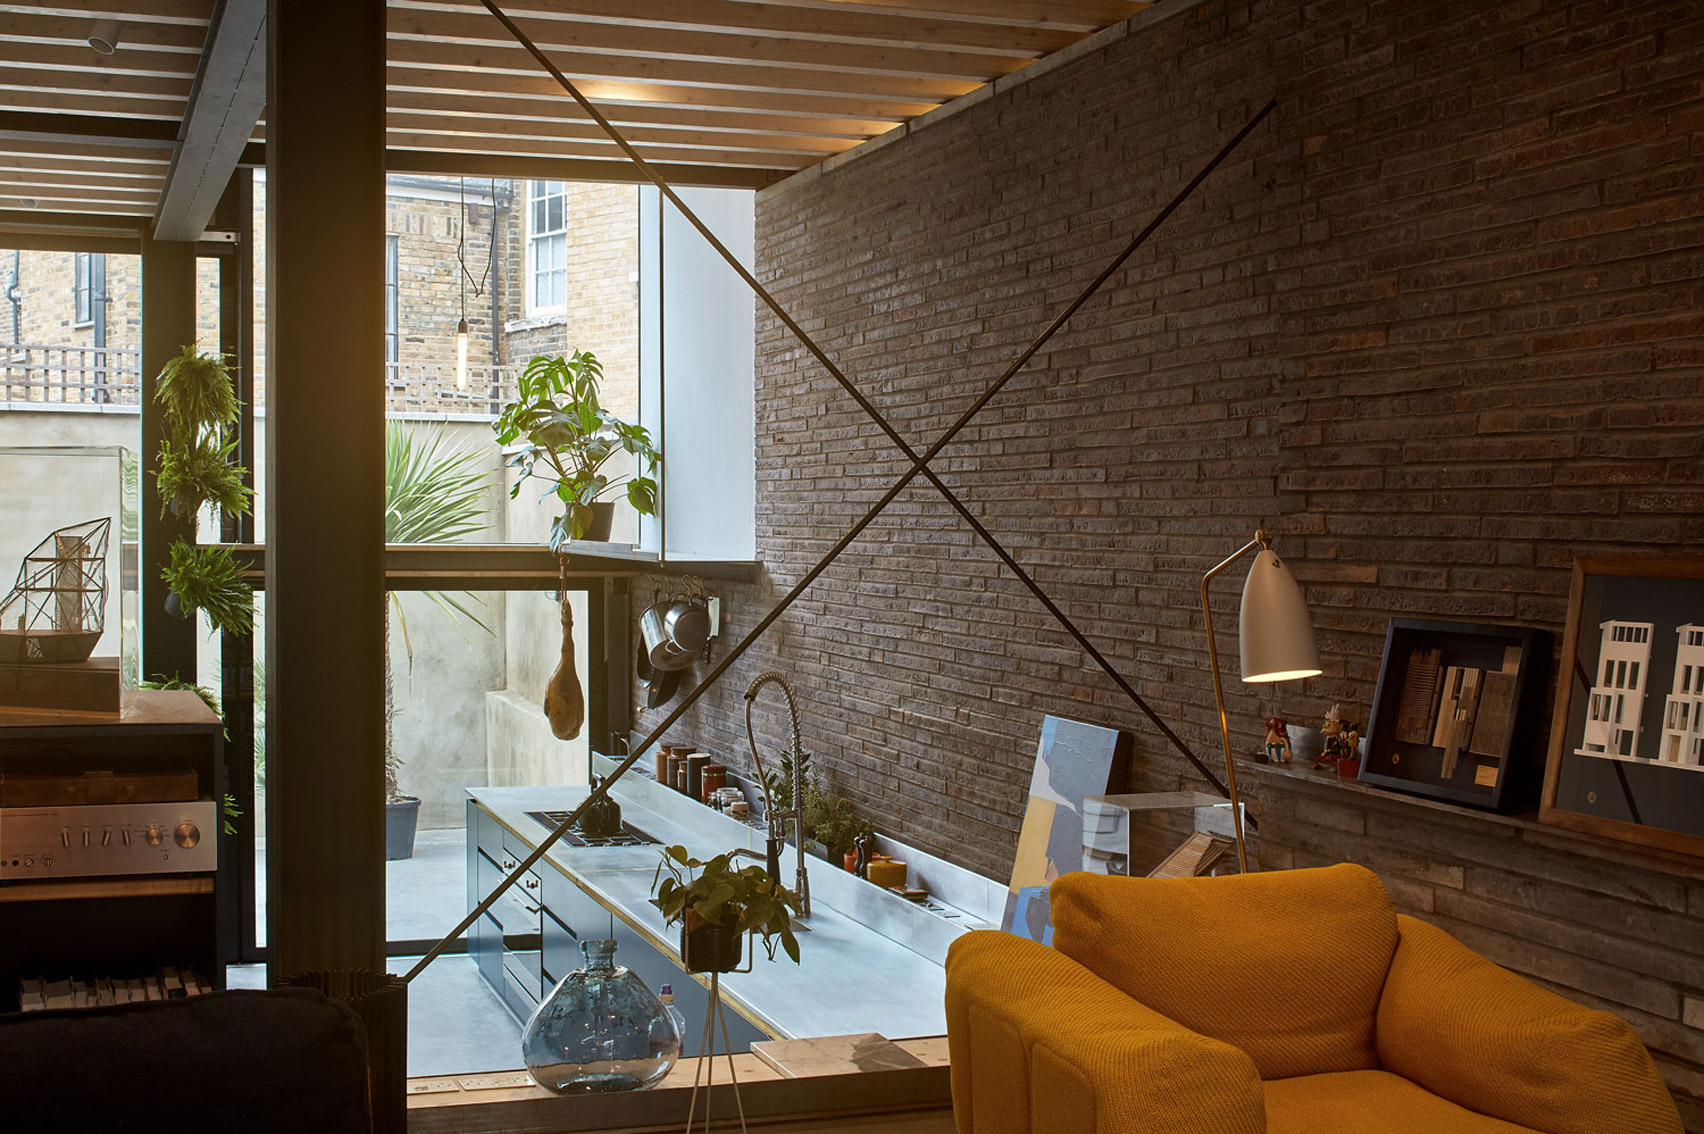 Makers House by Liddicoat & Goldhill